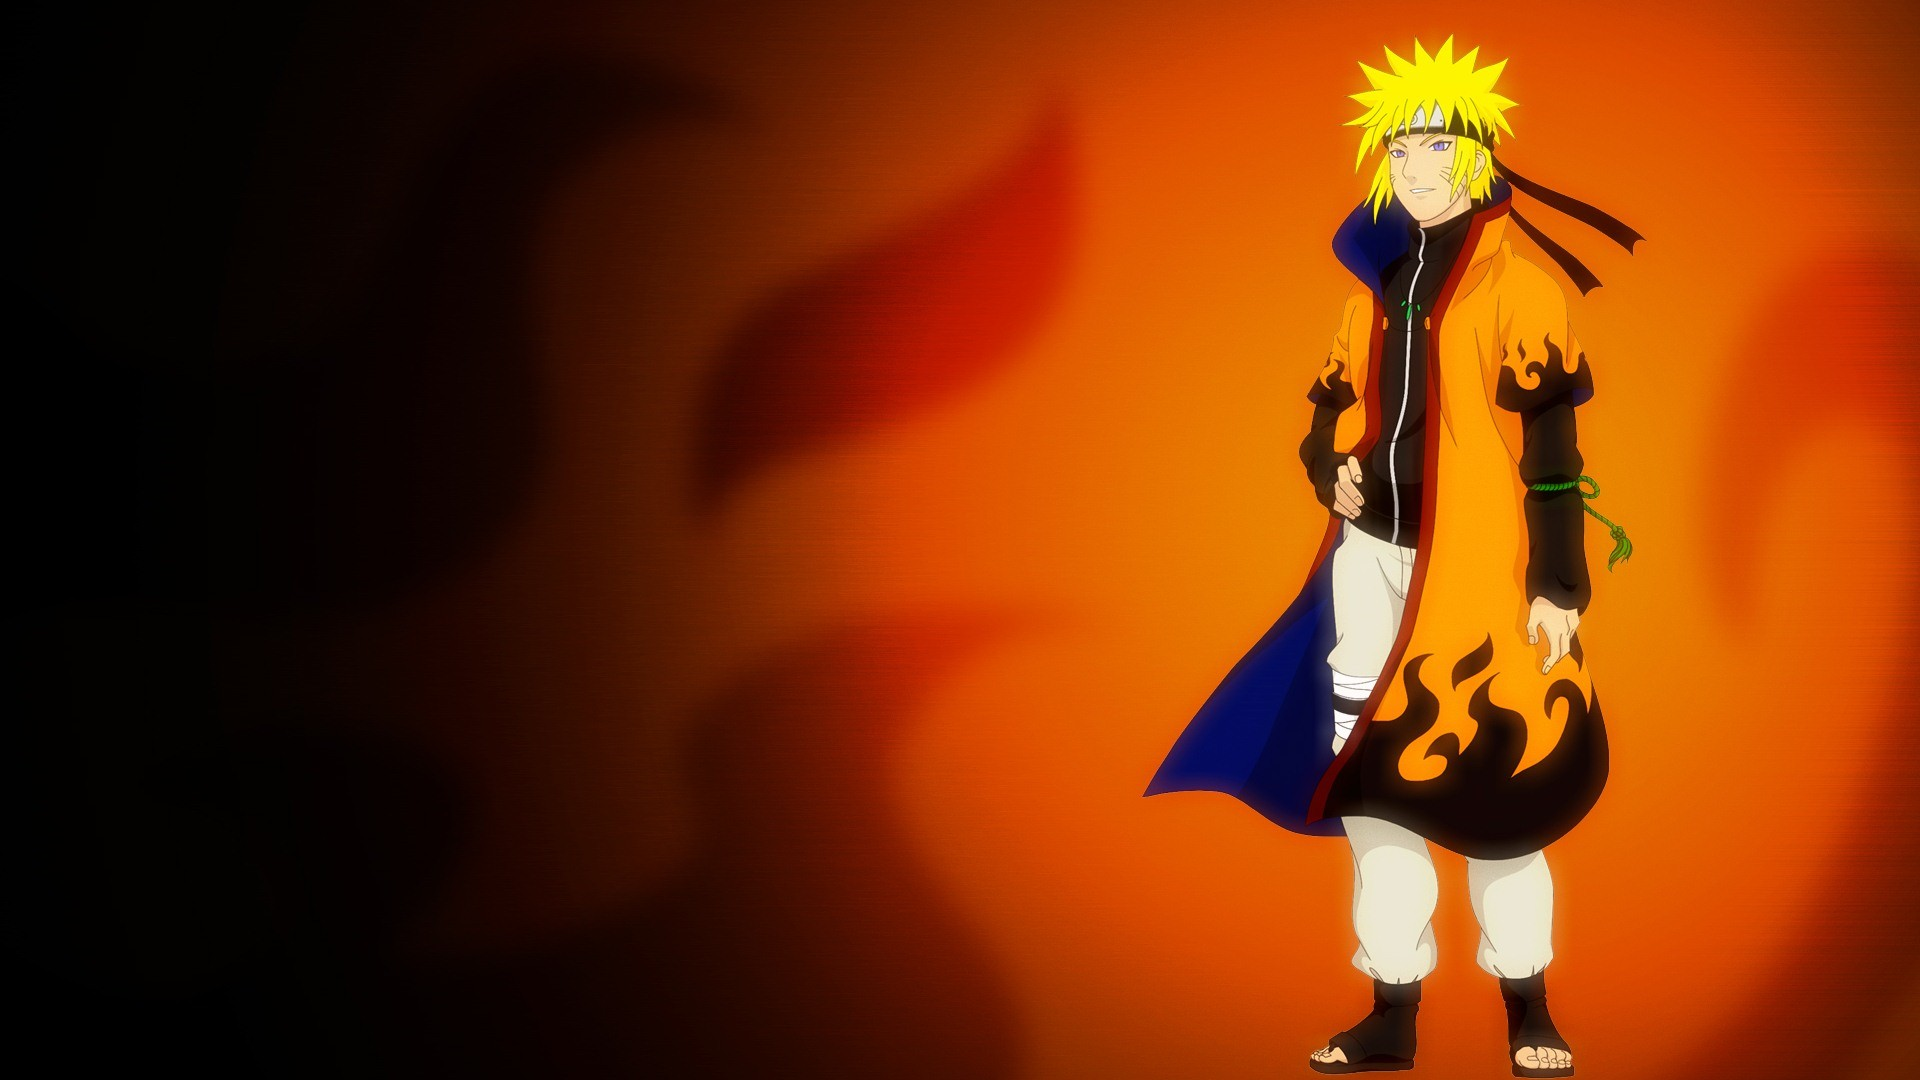 1920x1080 anime naruto cool 1920×1080 hd pictures download desktop wallpapers amazing  free 4k hd pictures smart phone 1920×1080 Wallpaper HD